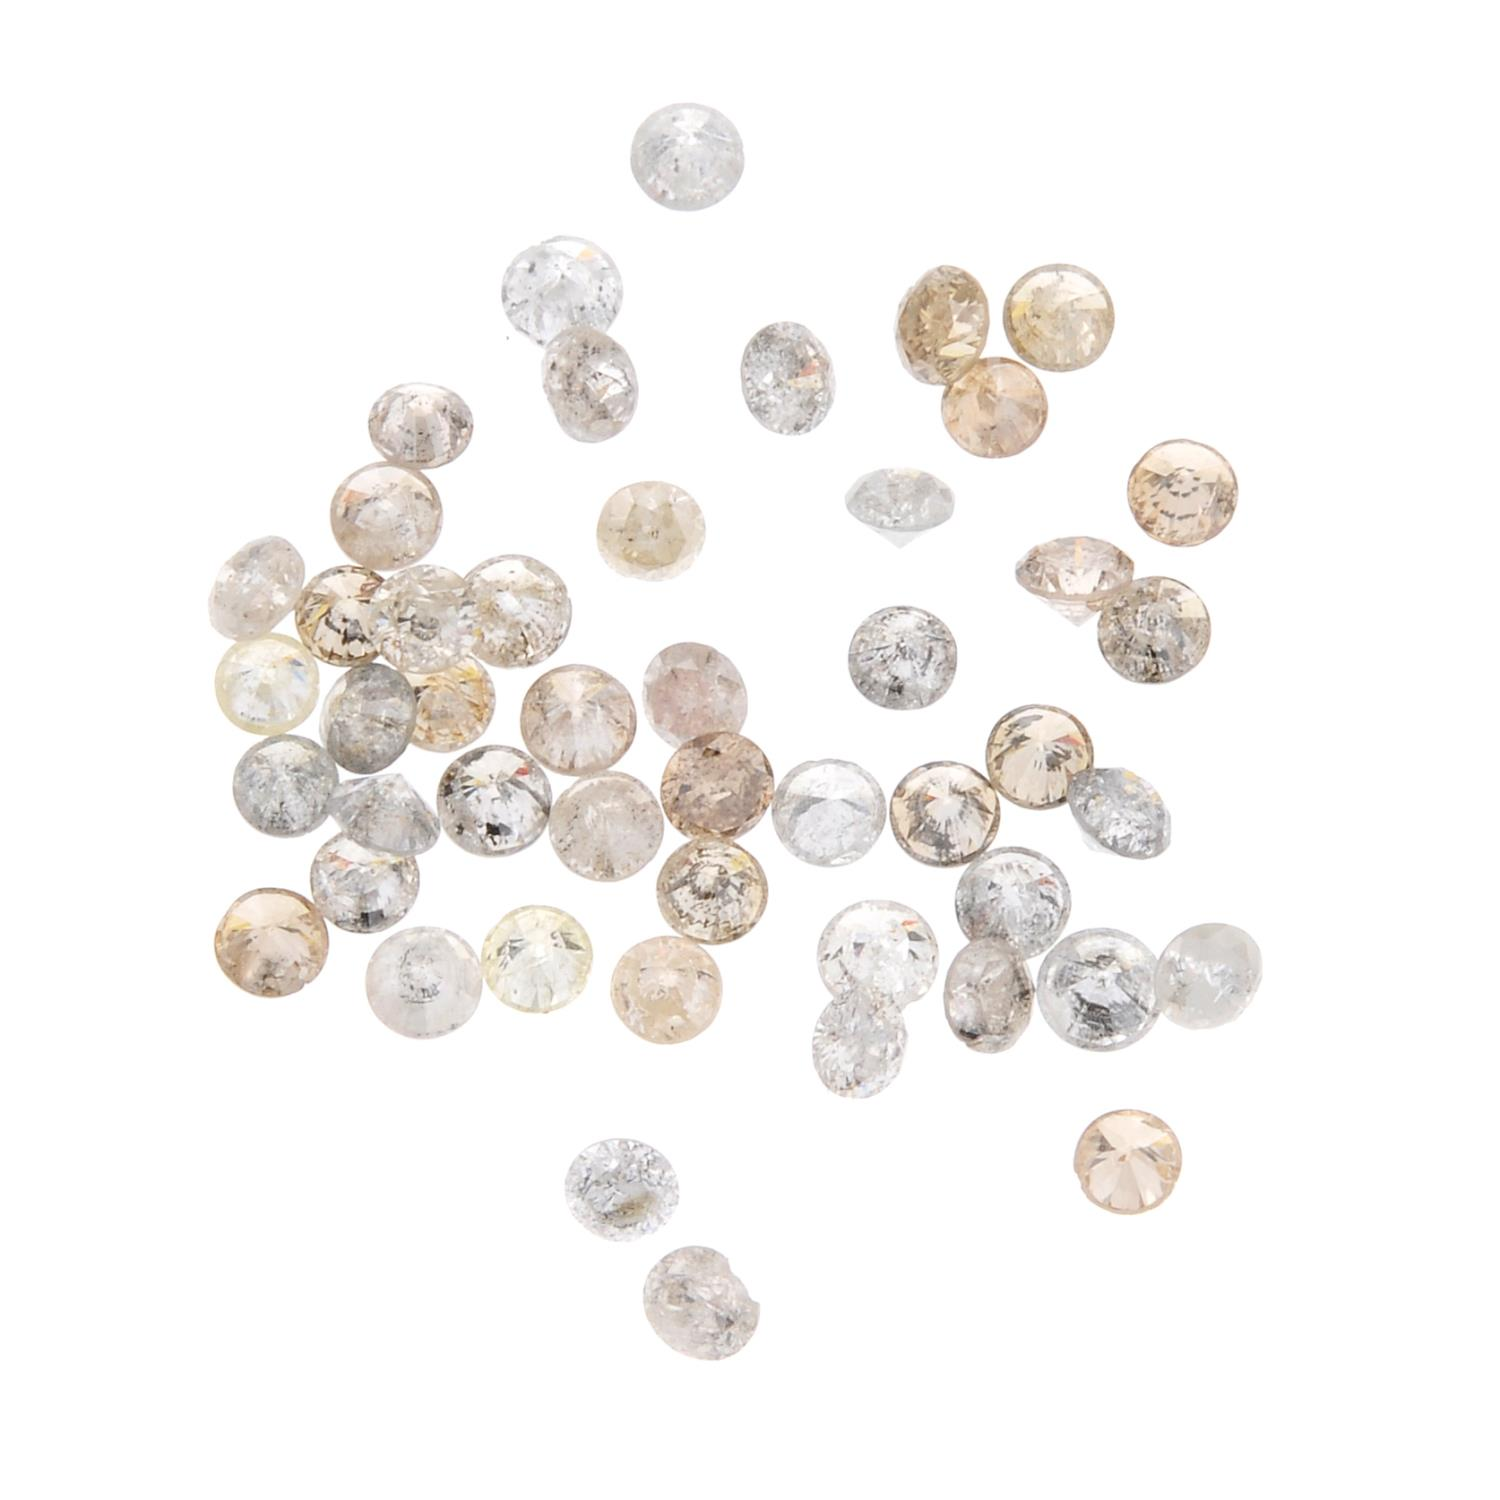 A small selection of round brilliant-cut melee and 'brown' melee diamonds.